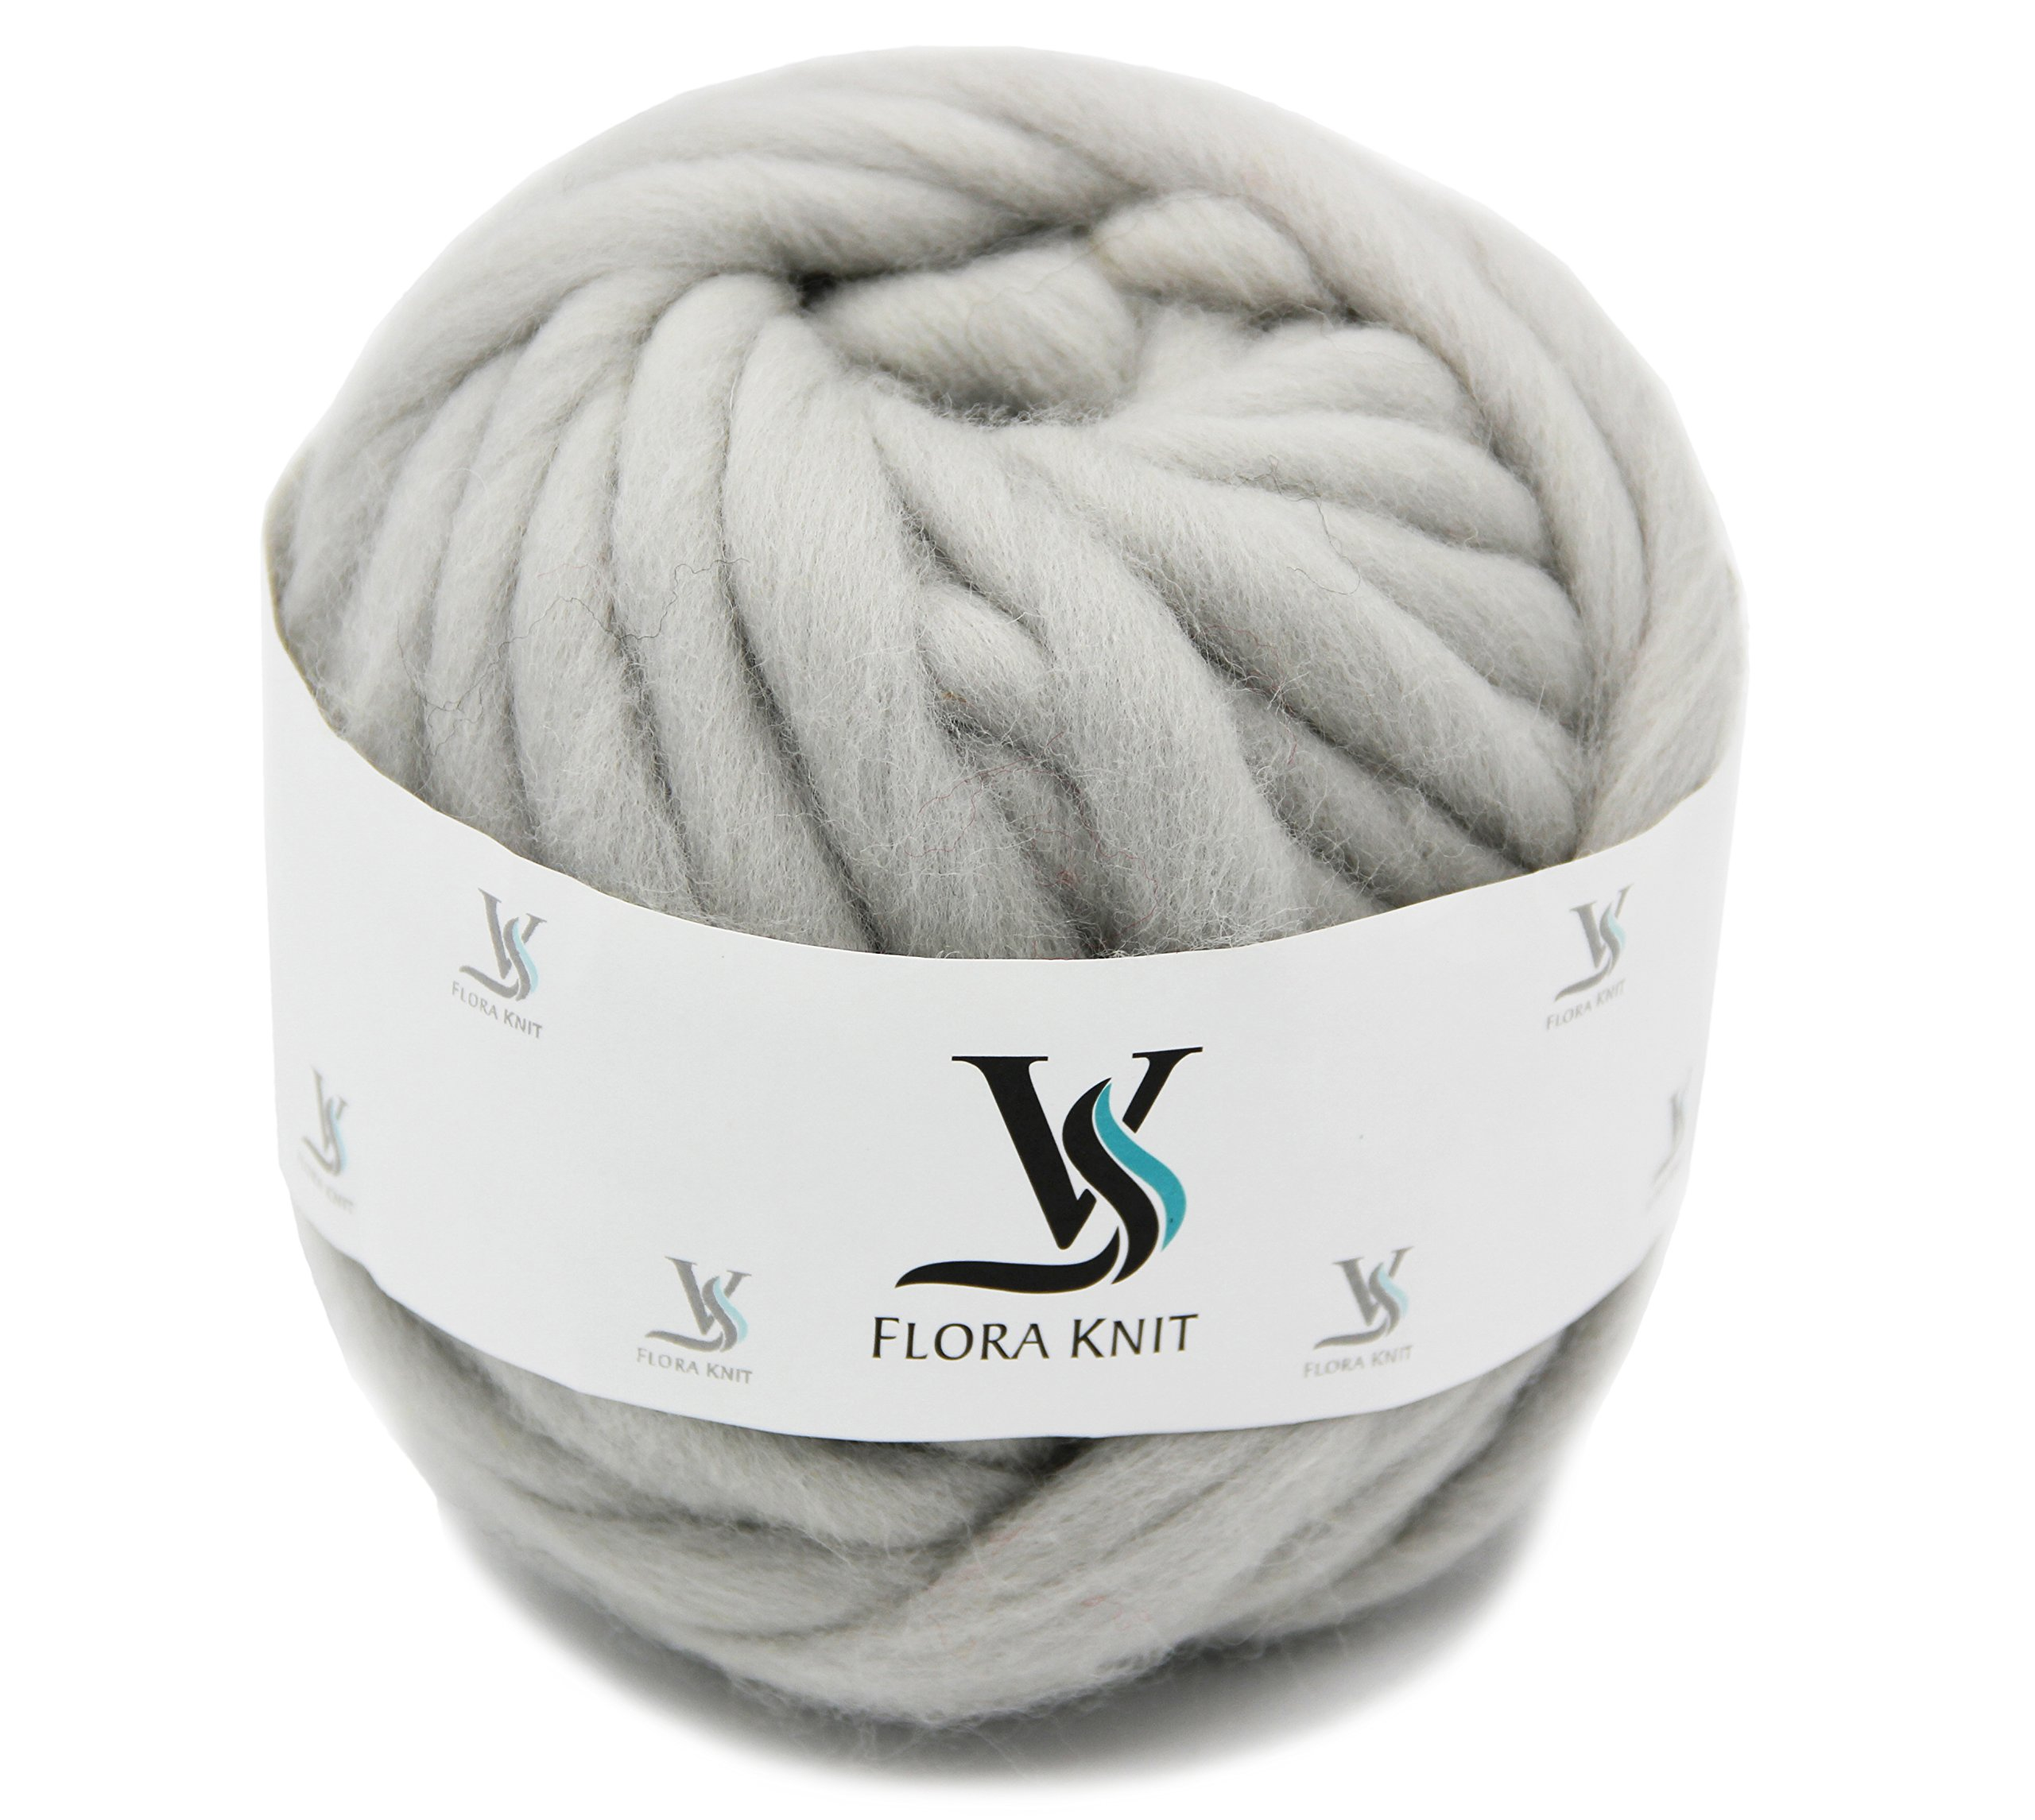 Merino Wool Super Chunky Yarn- Bulky Roving Yarn for Finger Knitting,Crocheting Felting,Making Rugs Blanket and Crafts by FLORAKNIT (Light Gray, Chunky-40mm-1.1LB) by FLORAVOGUE